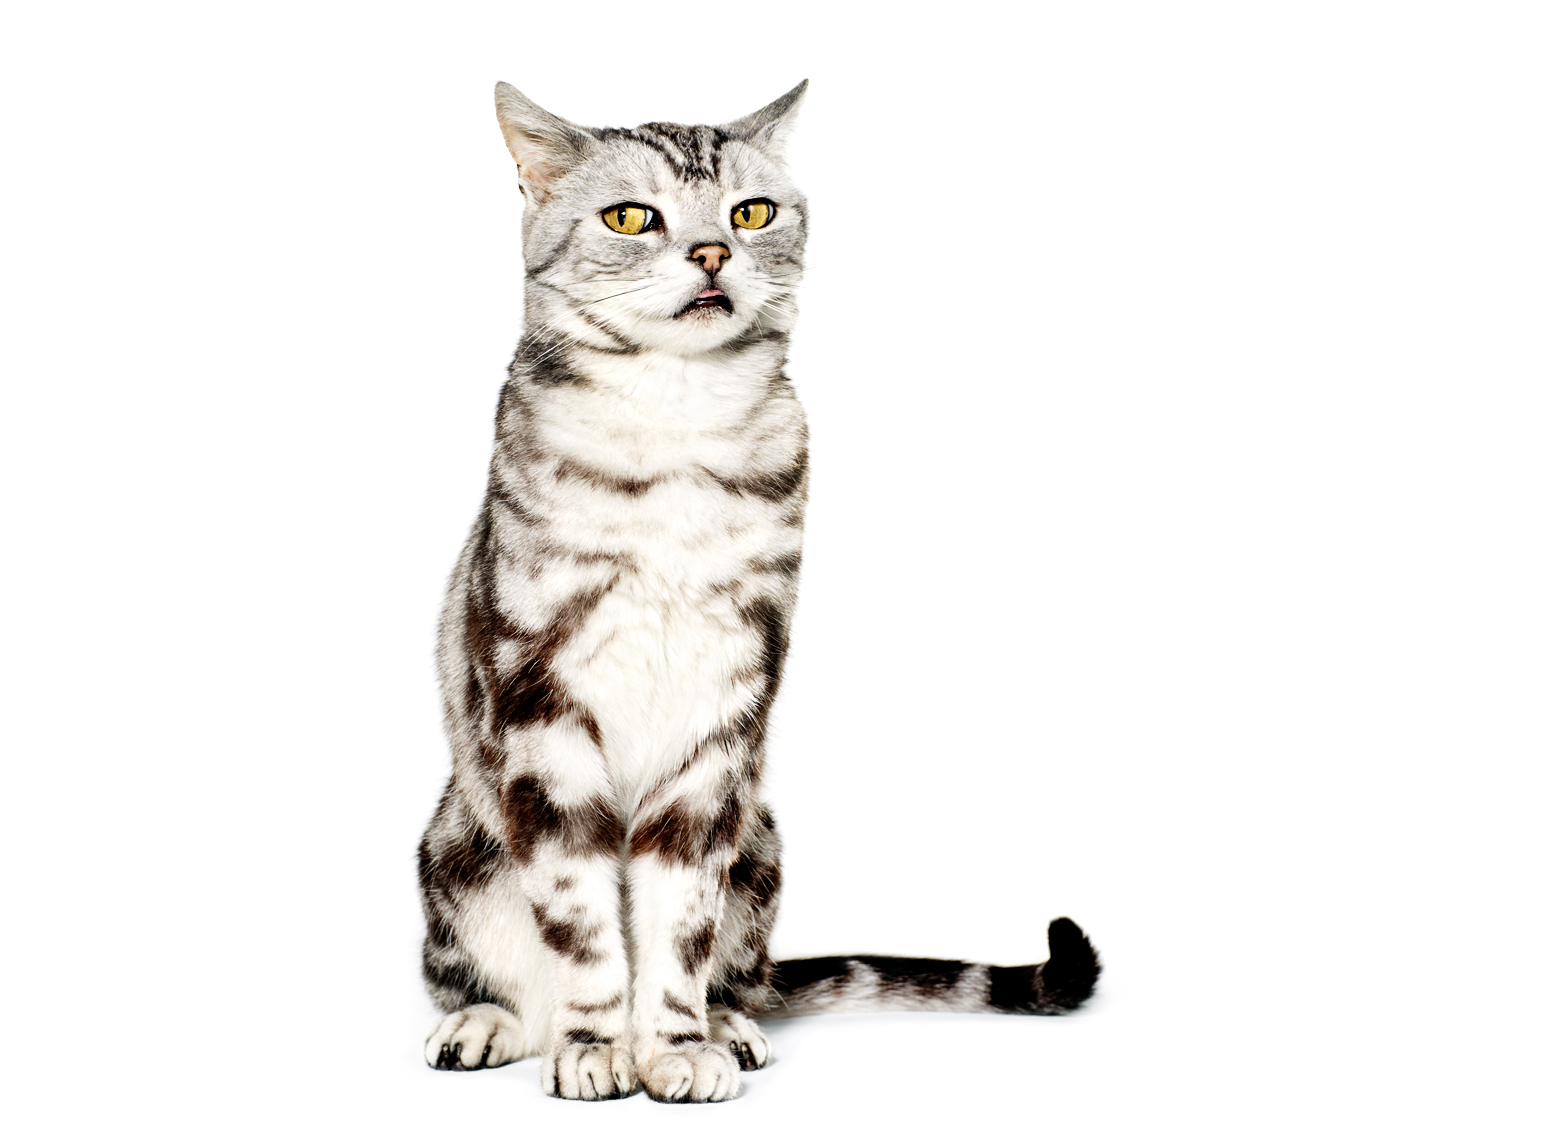 American shorthair skeptical cat